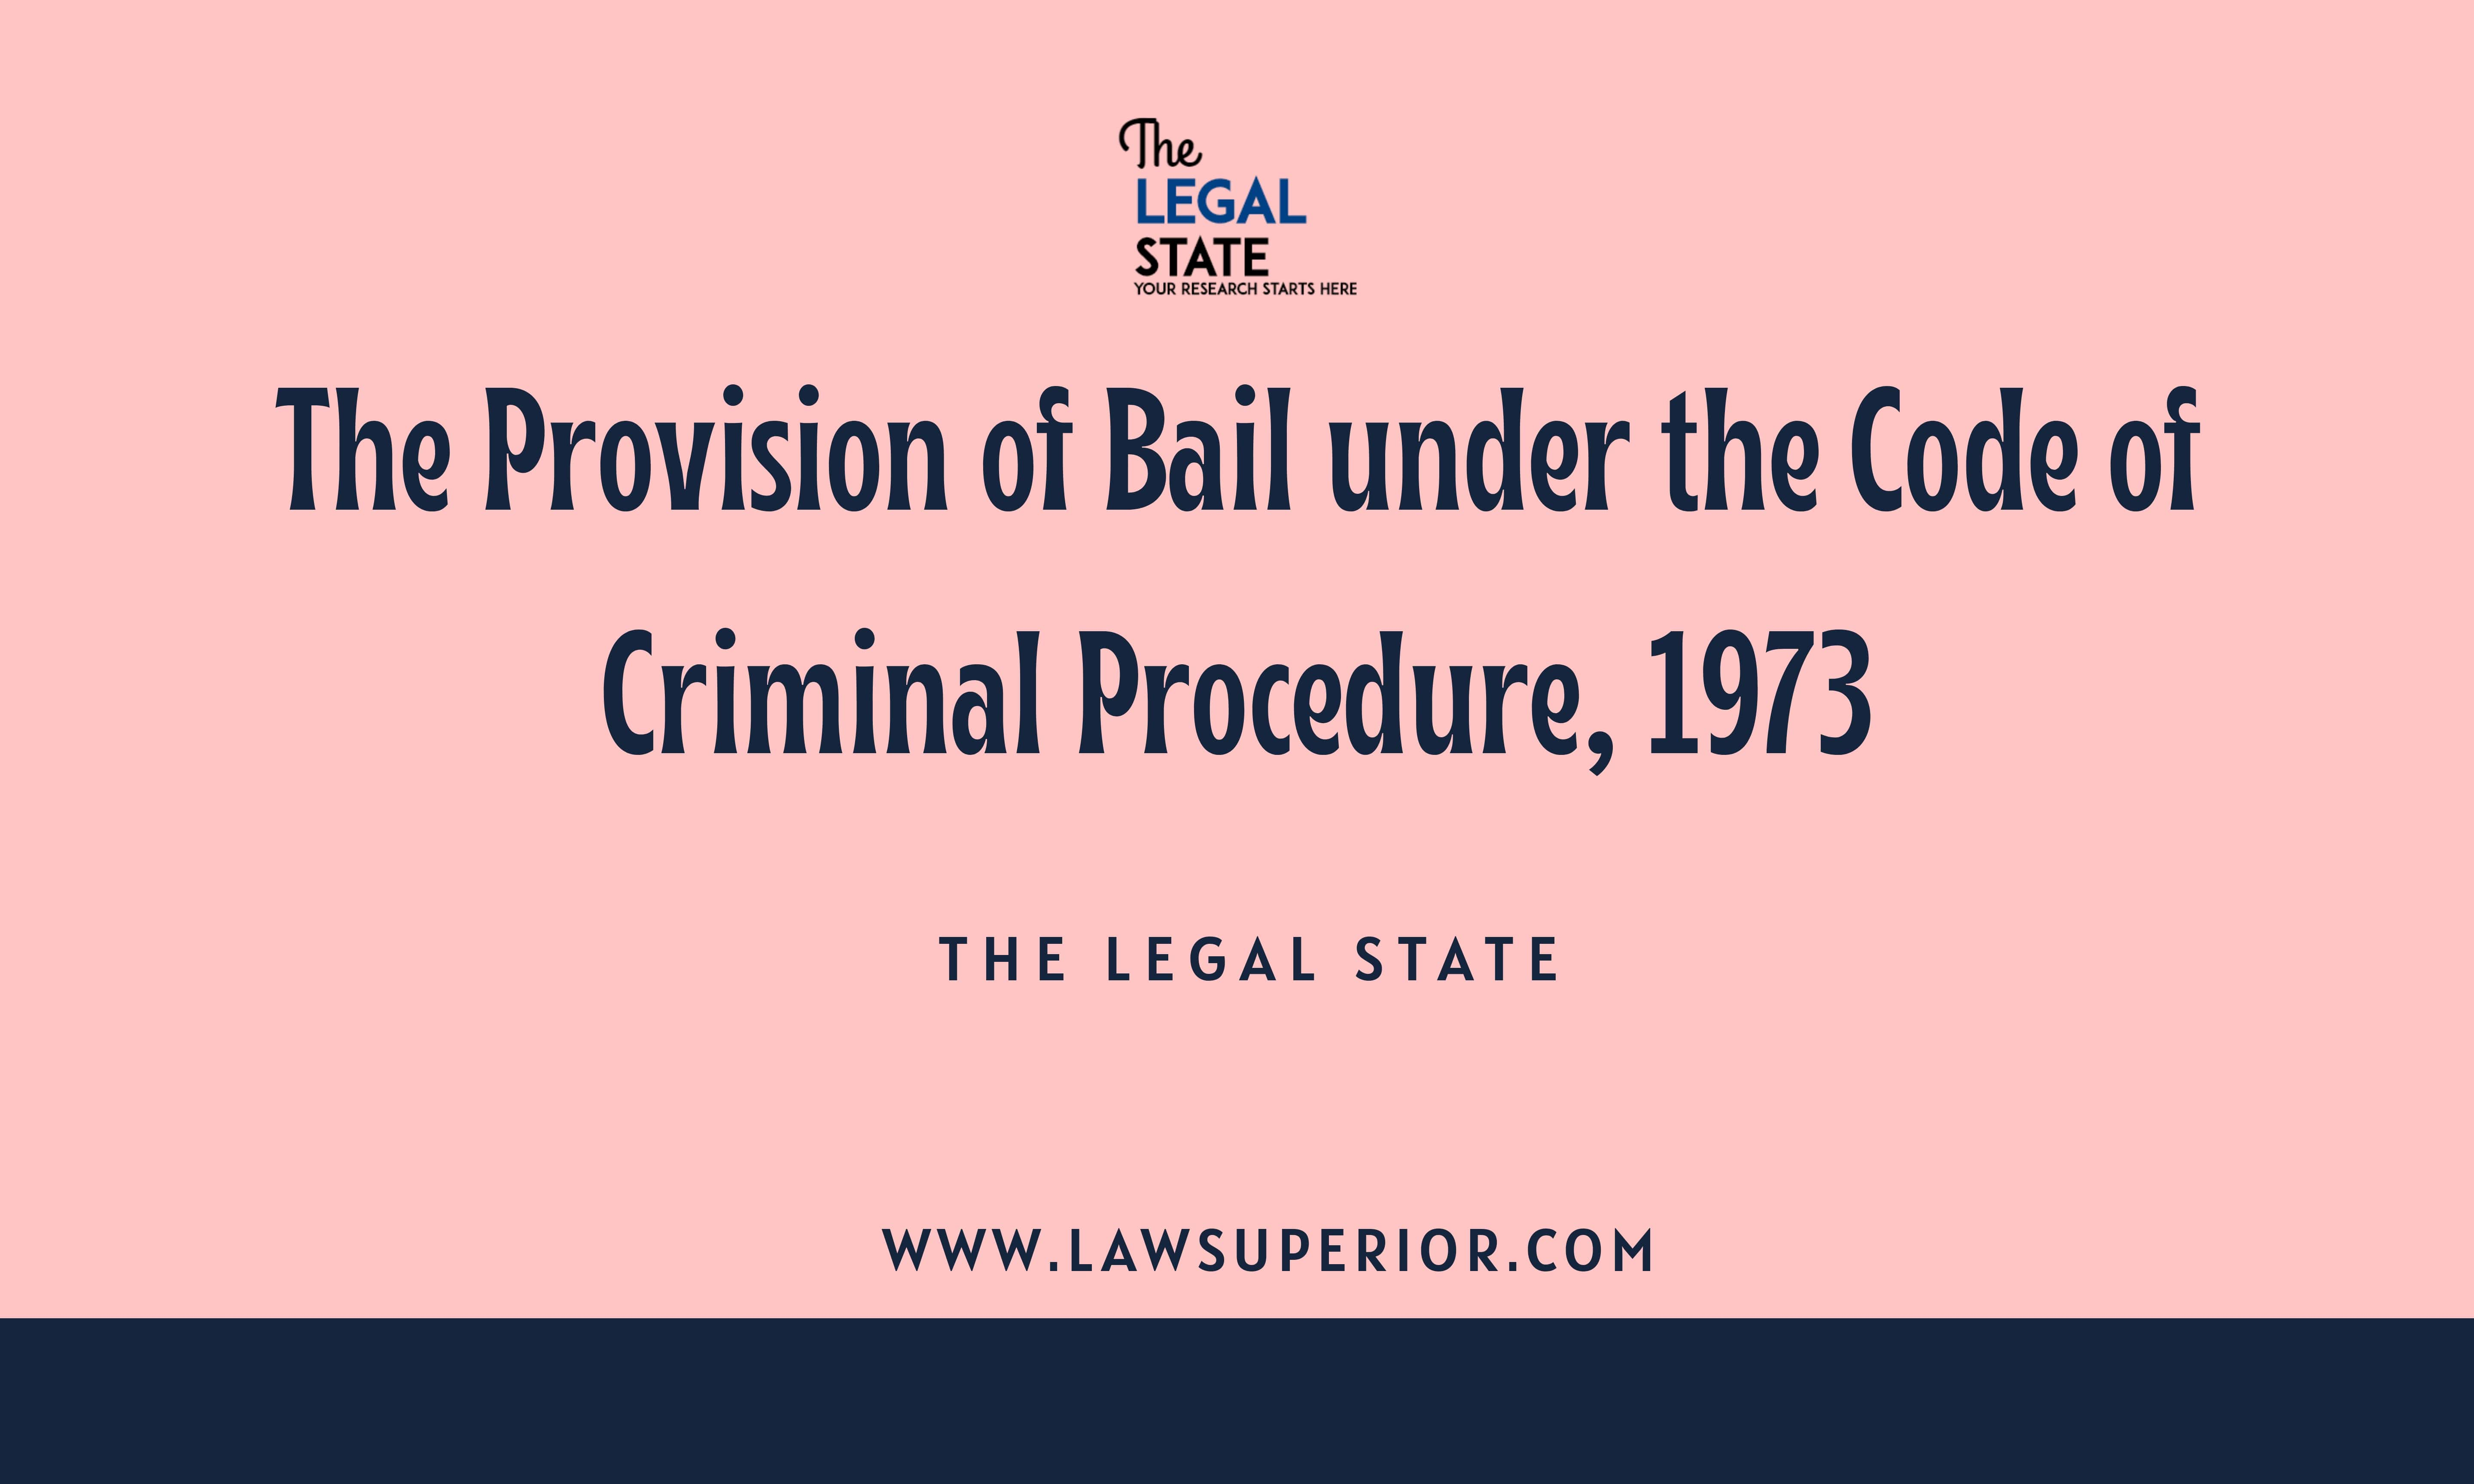 The Provision of Bail under the Code of Criminal Procedure, 1973